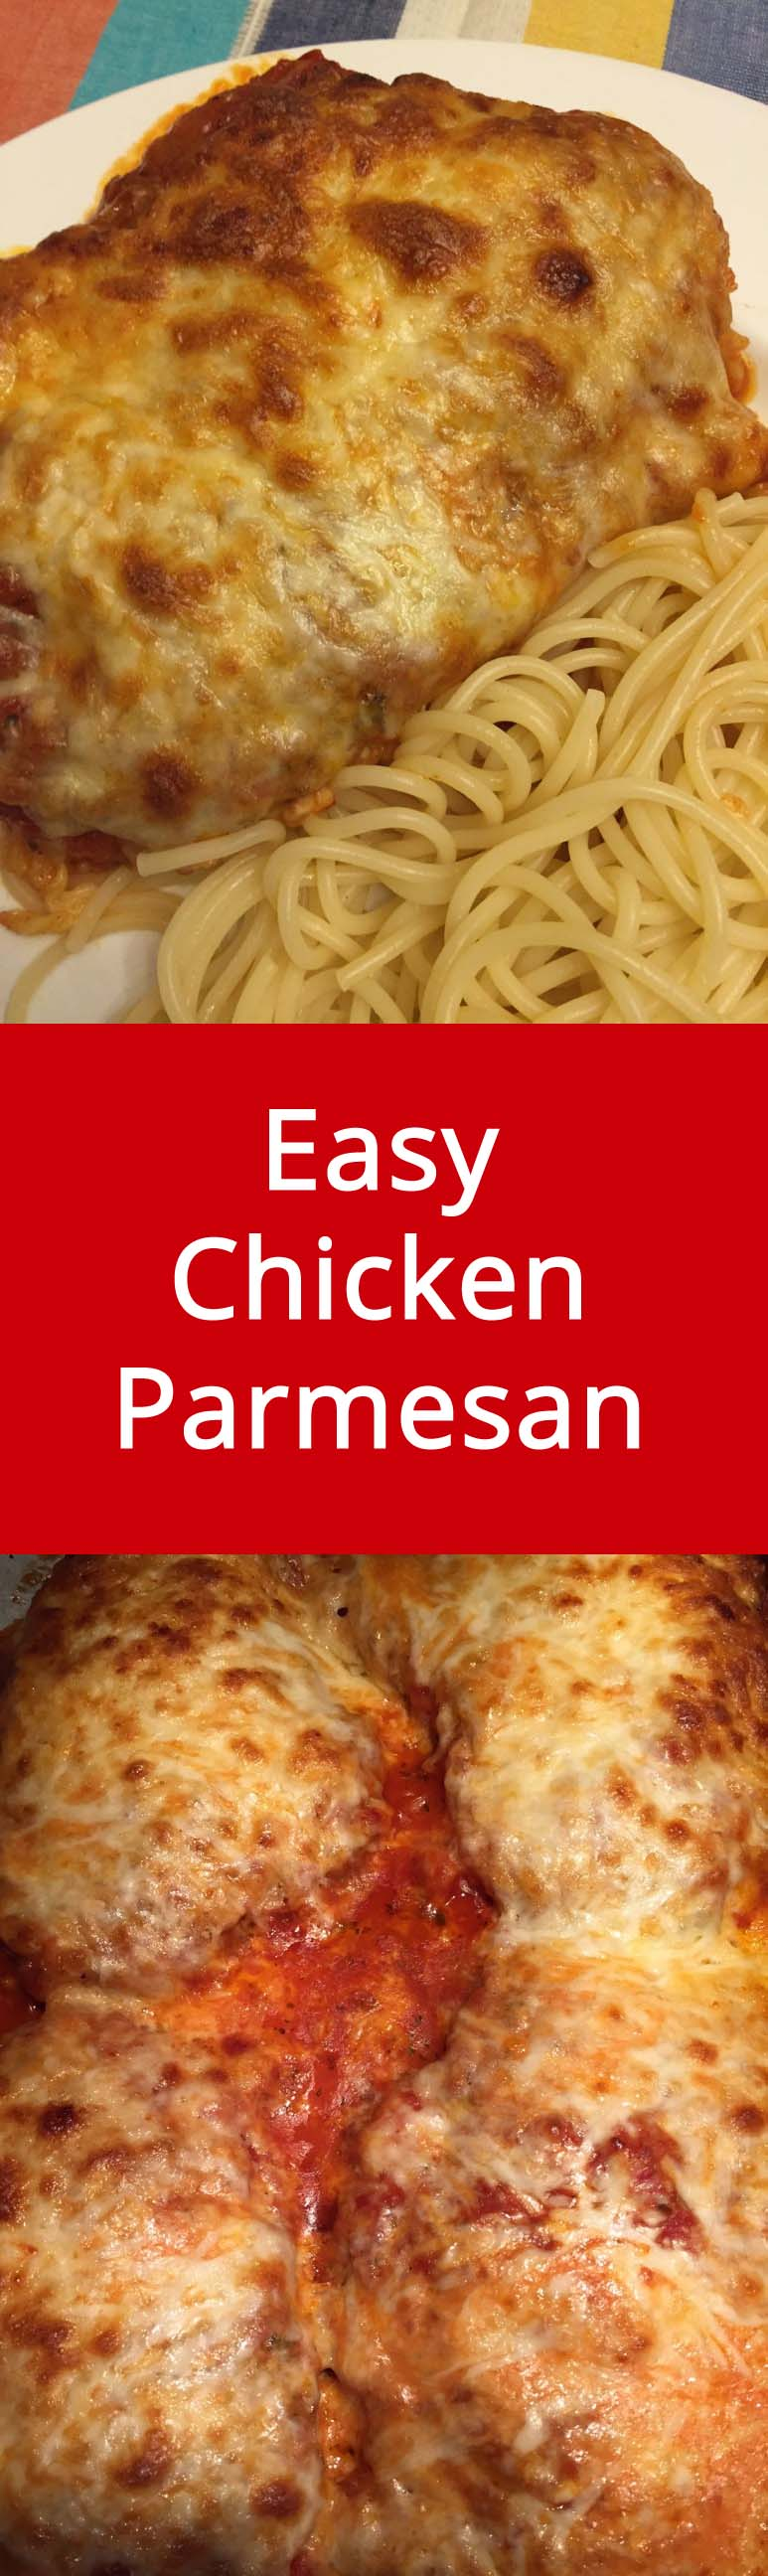 Easy Italian Chicken Parmesan Recipe | MelanieCooks.com